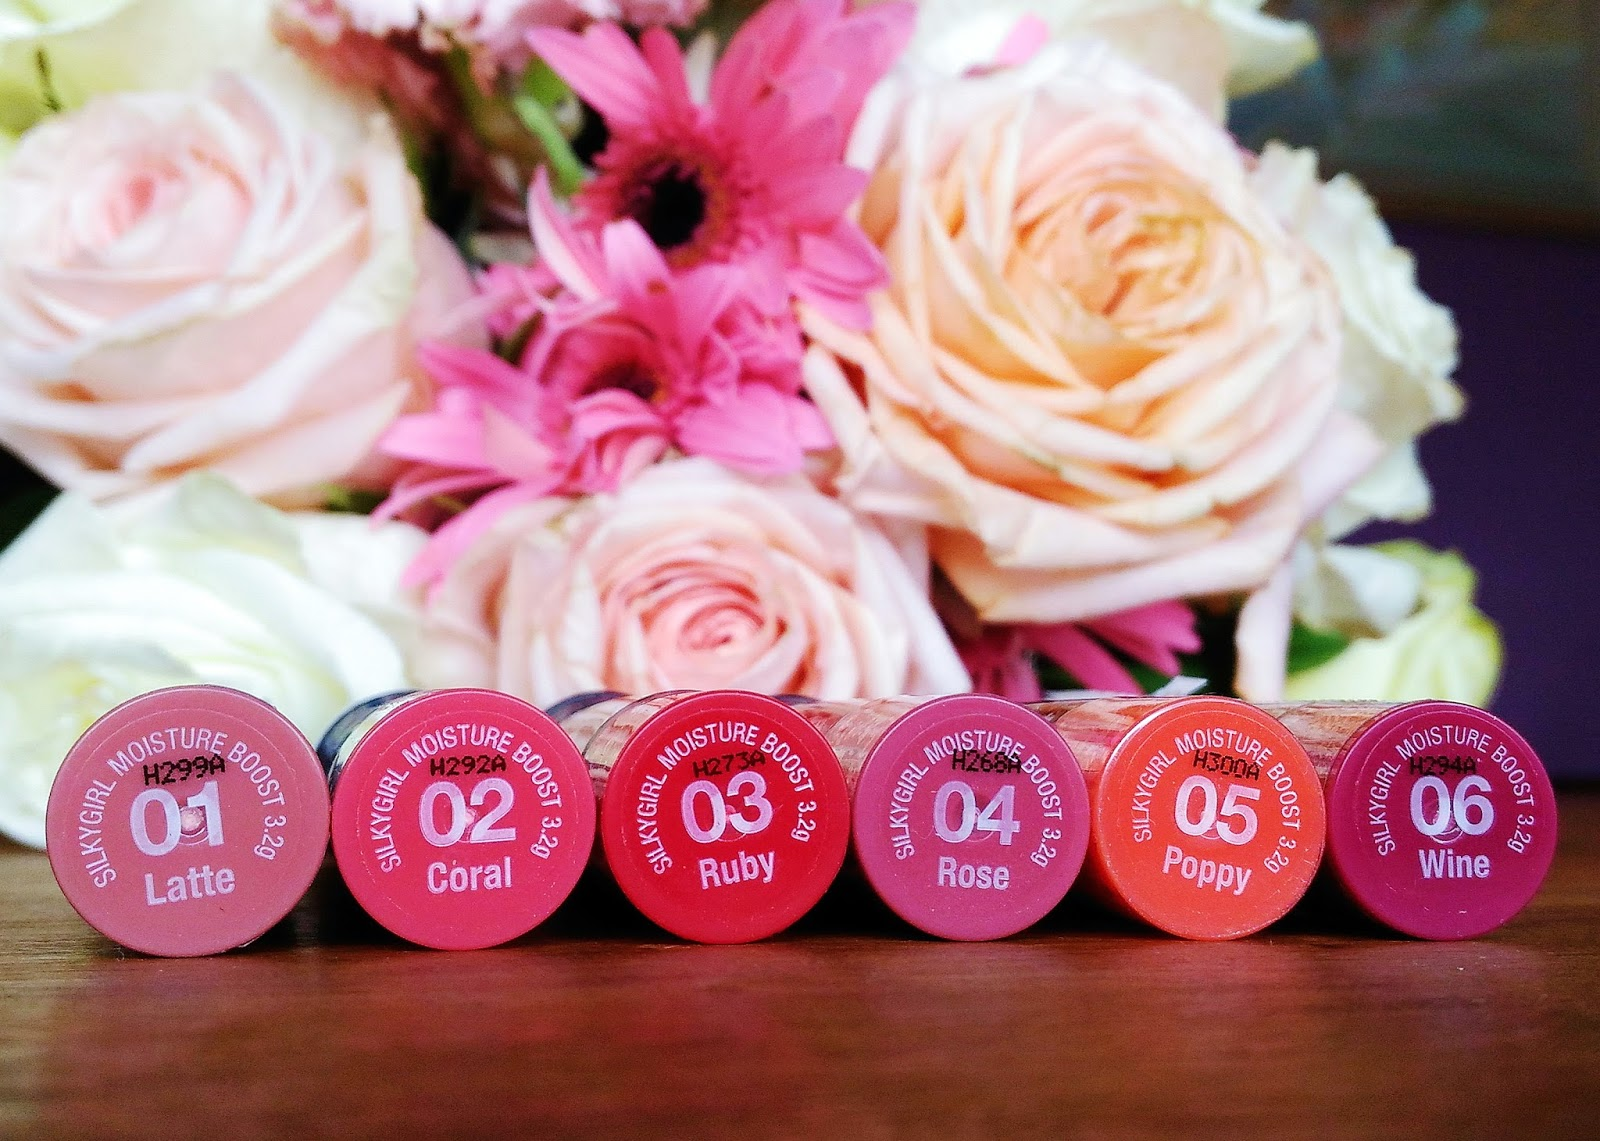 Silkygirl Moisture Boost Lipcolor Balm 03 Ruby Daftar Harga Smooth Lip Color Simply Pink Source All Shades 01 Latte 02 Coral 04 Rose 05